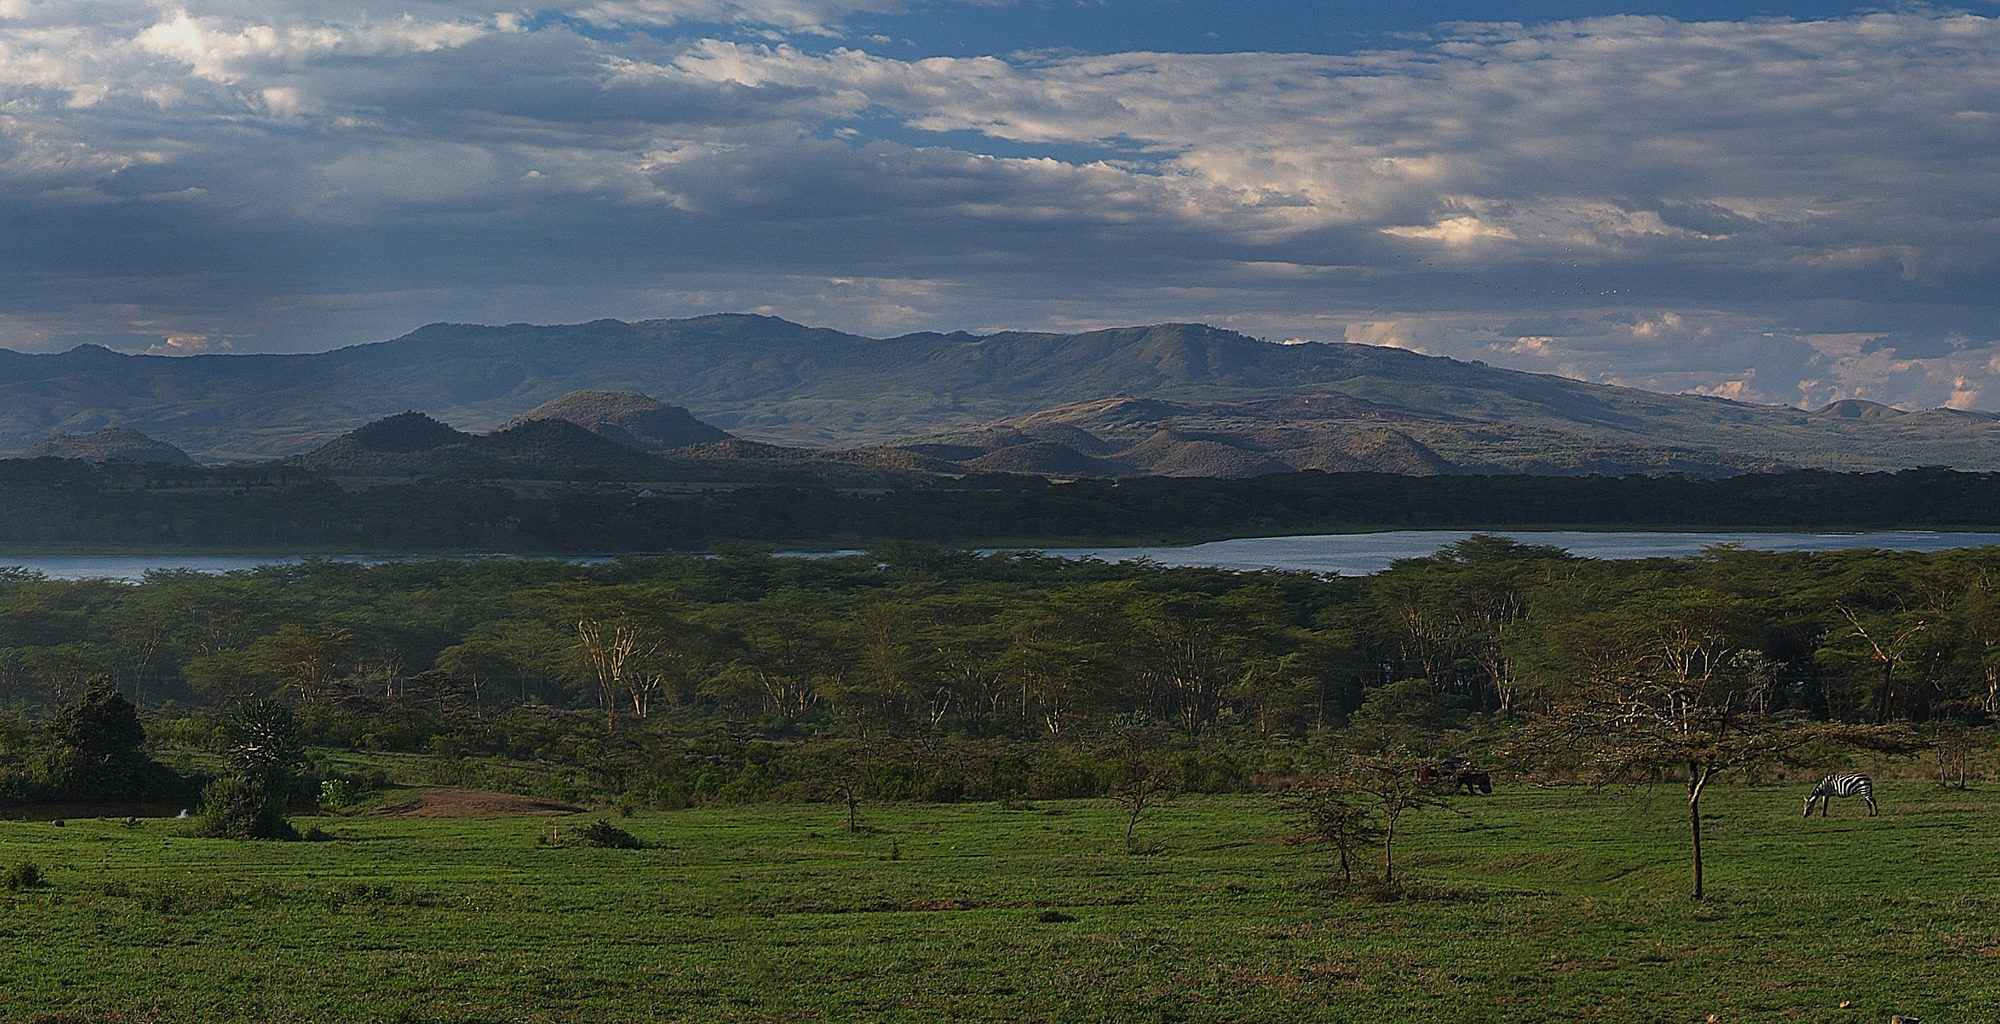 Kenya-Great-Rift-Valley-Landscape